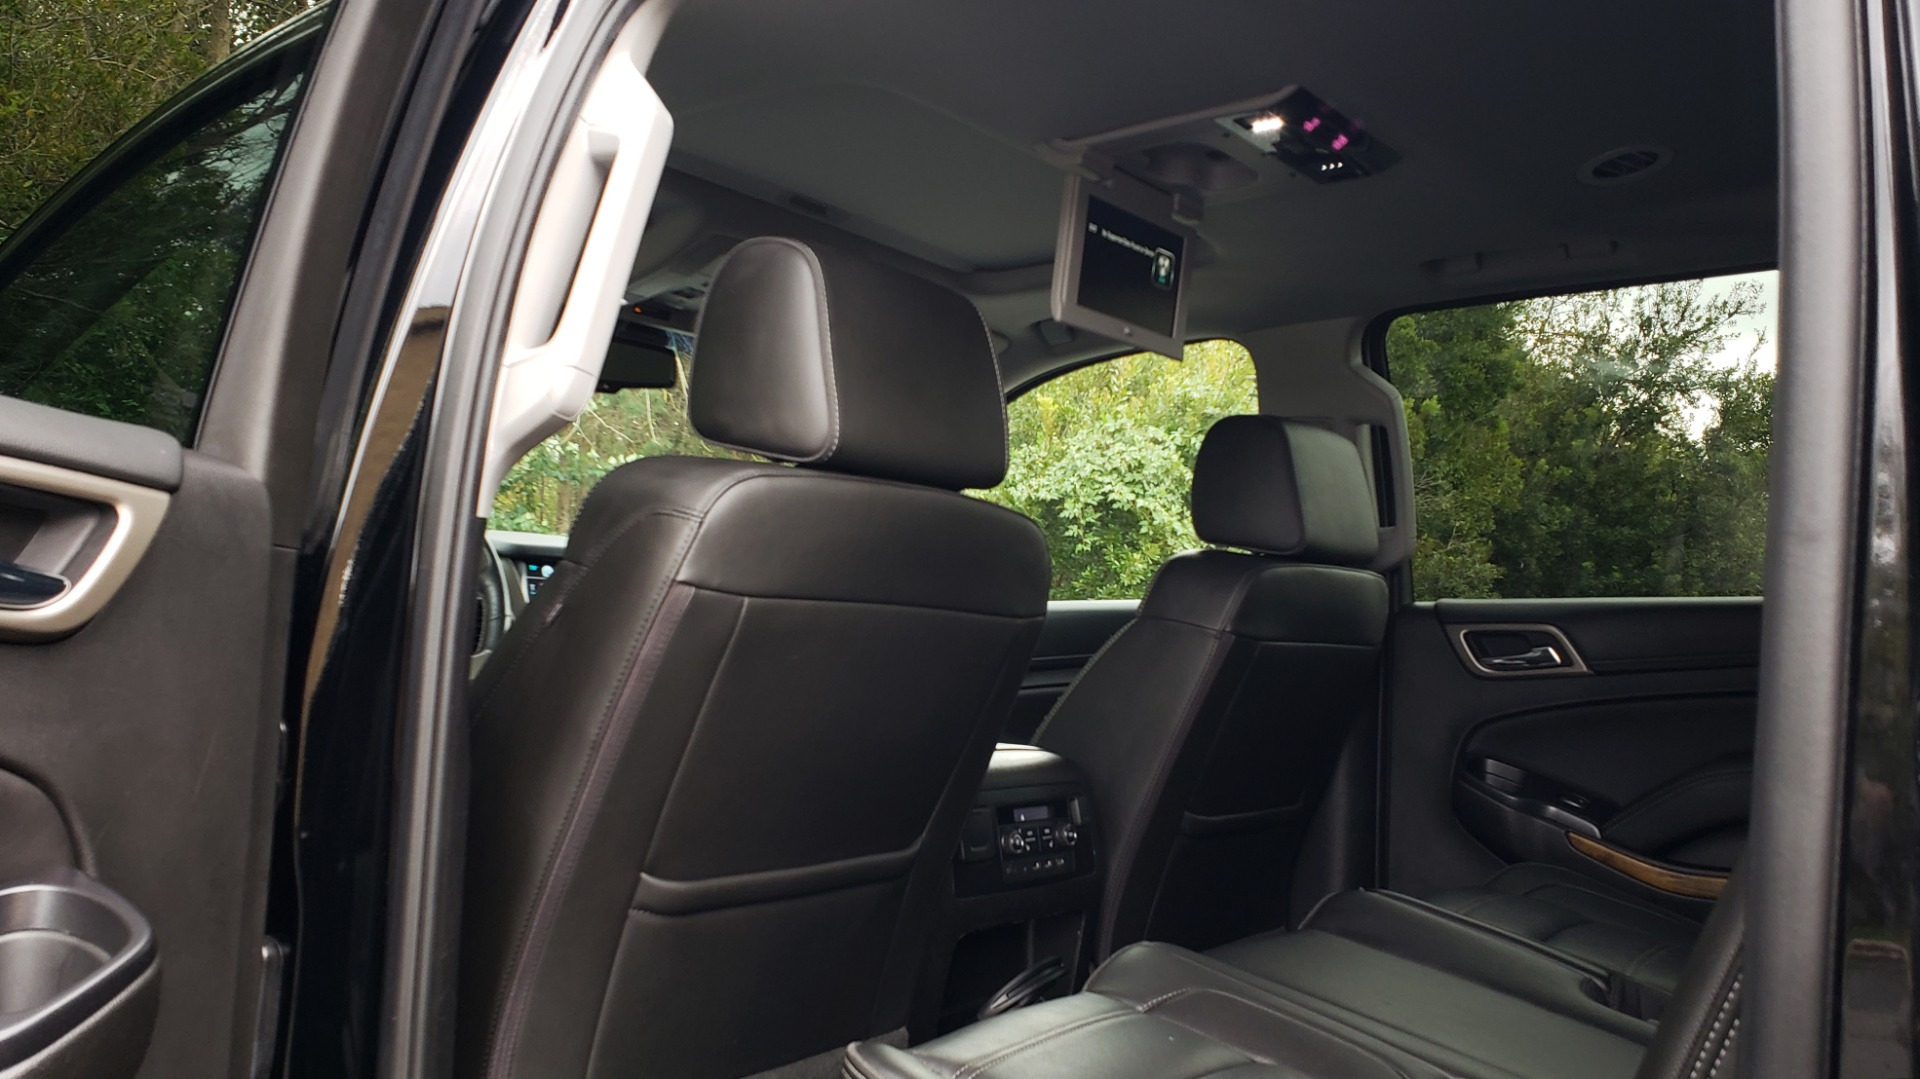 Used 2017 GMC YUKON XL DENALI 4WD / NAV / SUNROOF / ENT / 3-ROWS / BOSE / REARVIEW for sale $48,695 at Formula Imports in Charlotte NC 28227 67